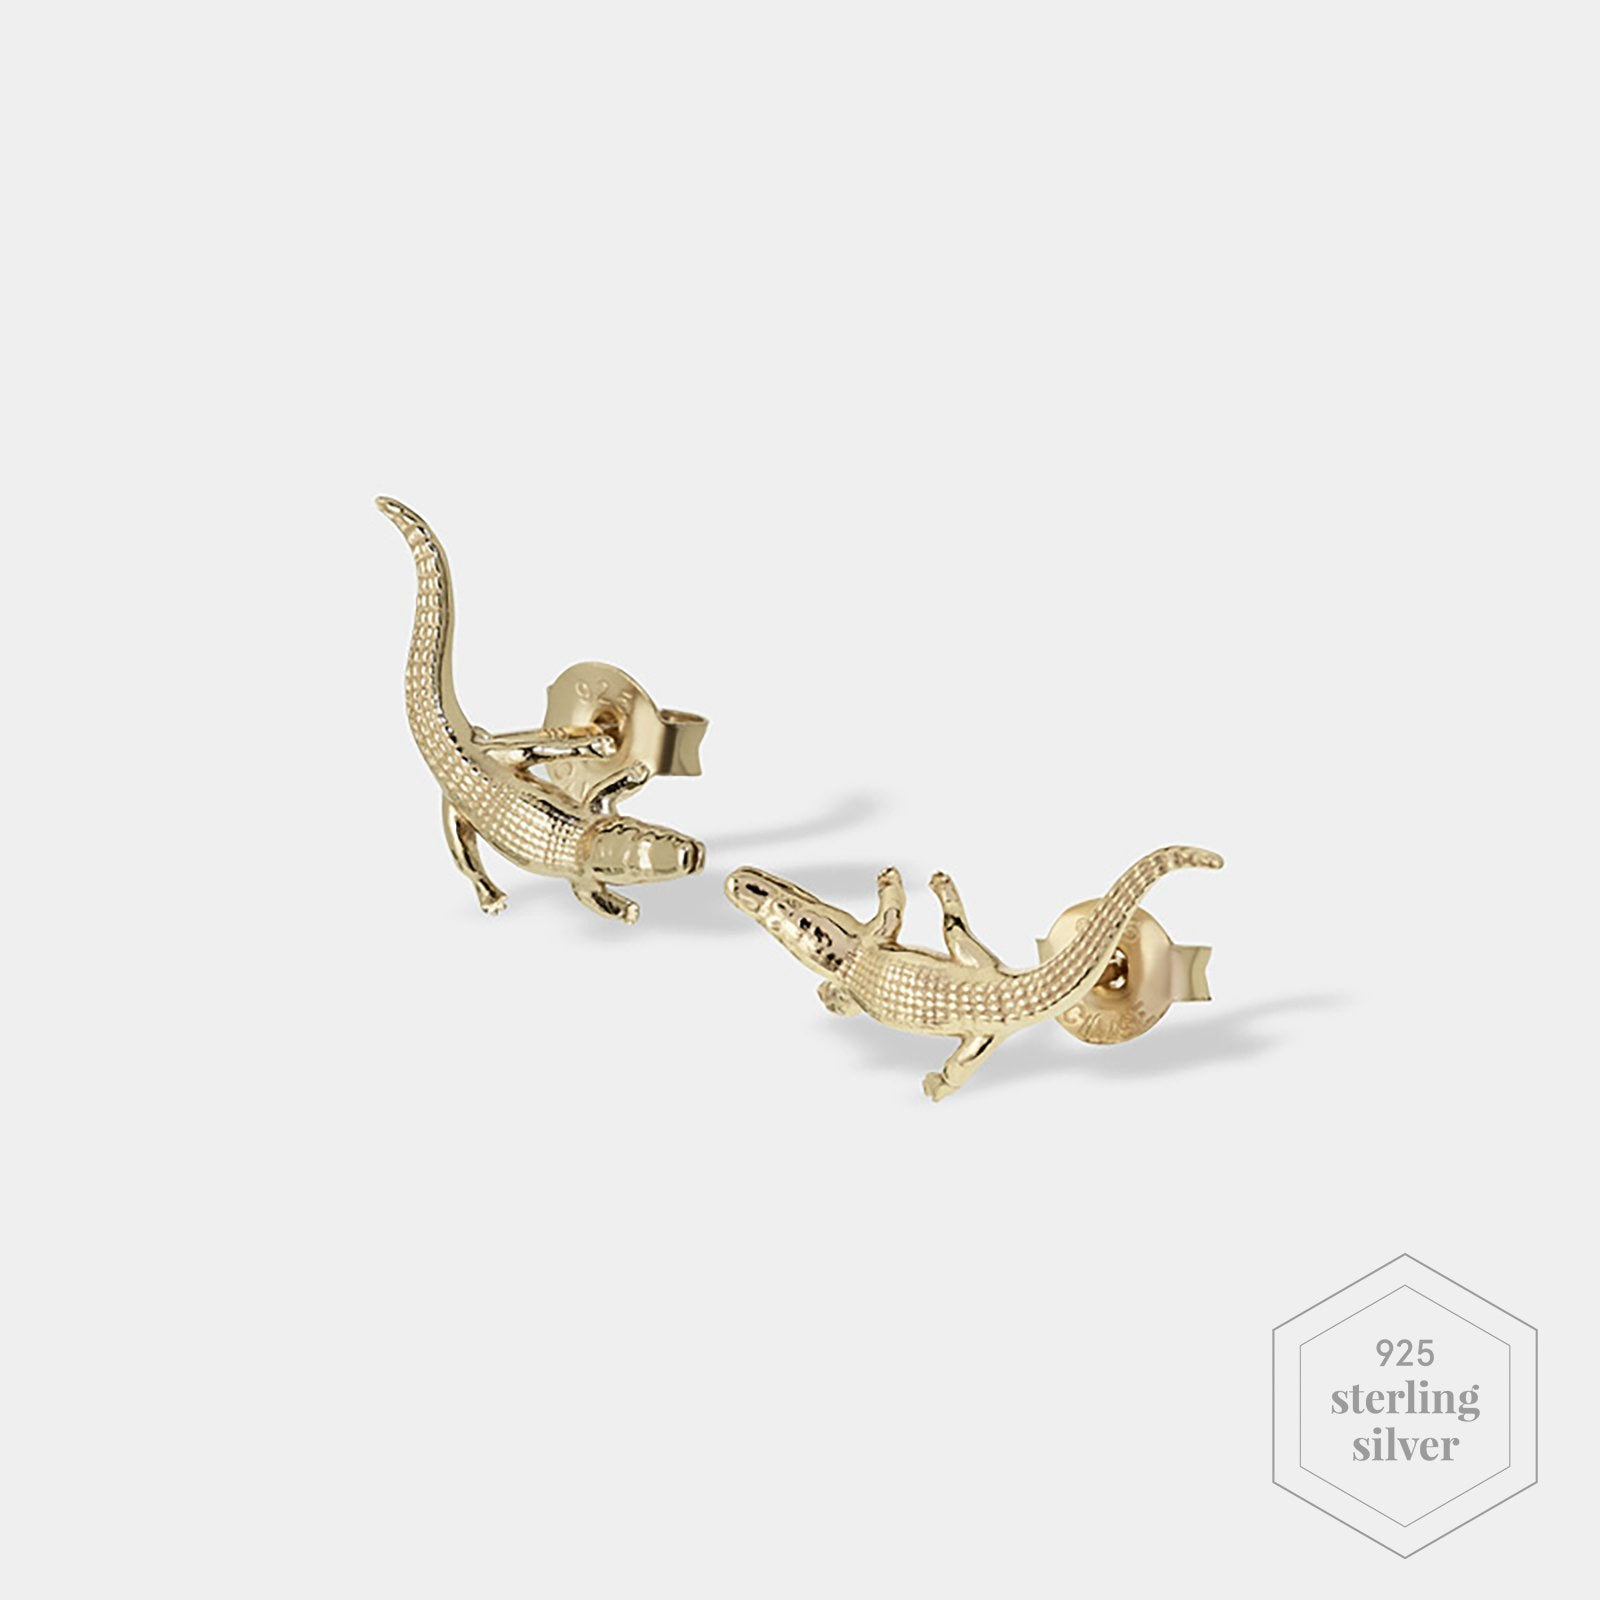 CLUSE Force Tropicale Gold Alligator Stud Earrings CLJ51018 - Earrings